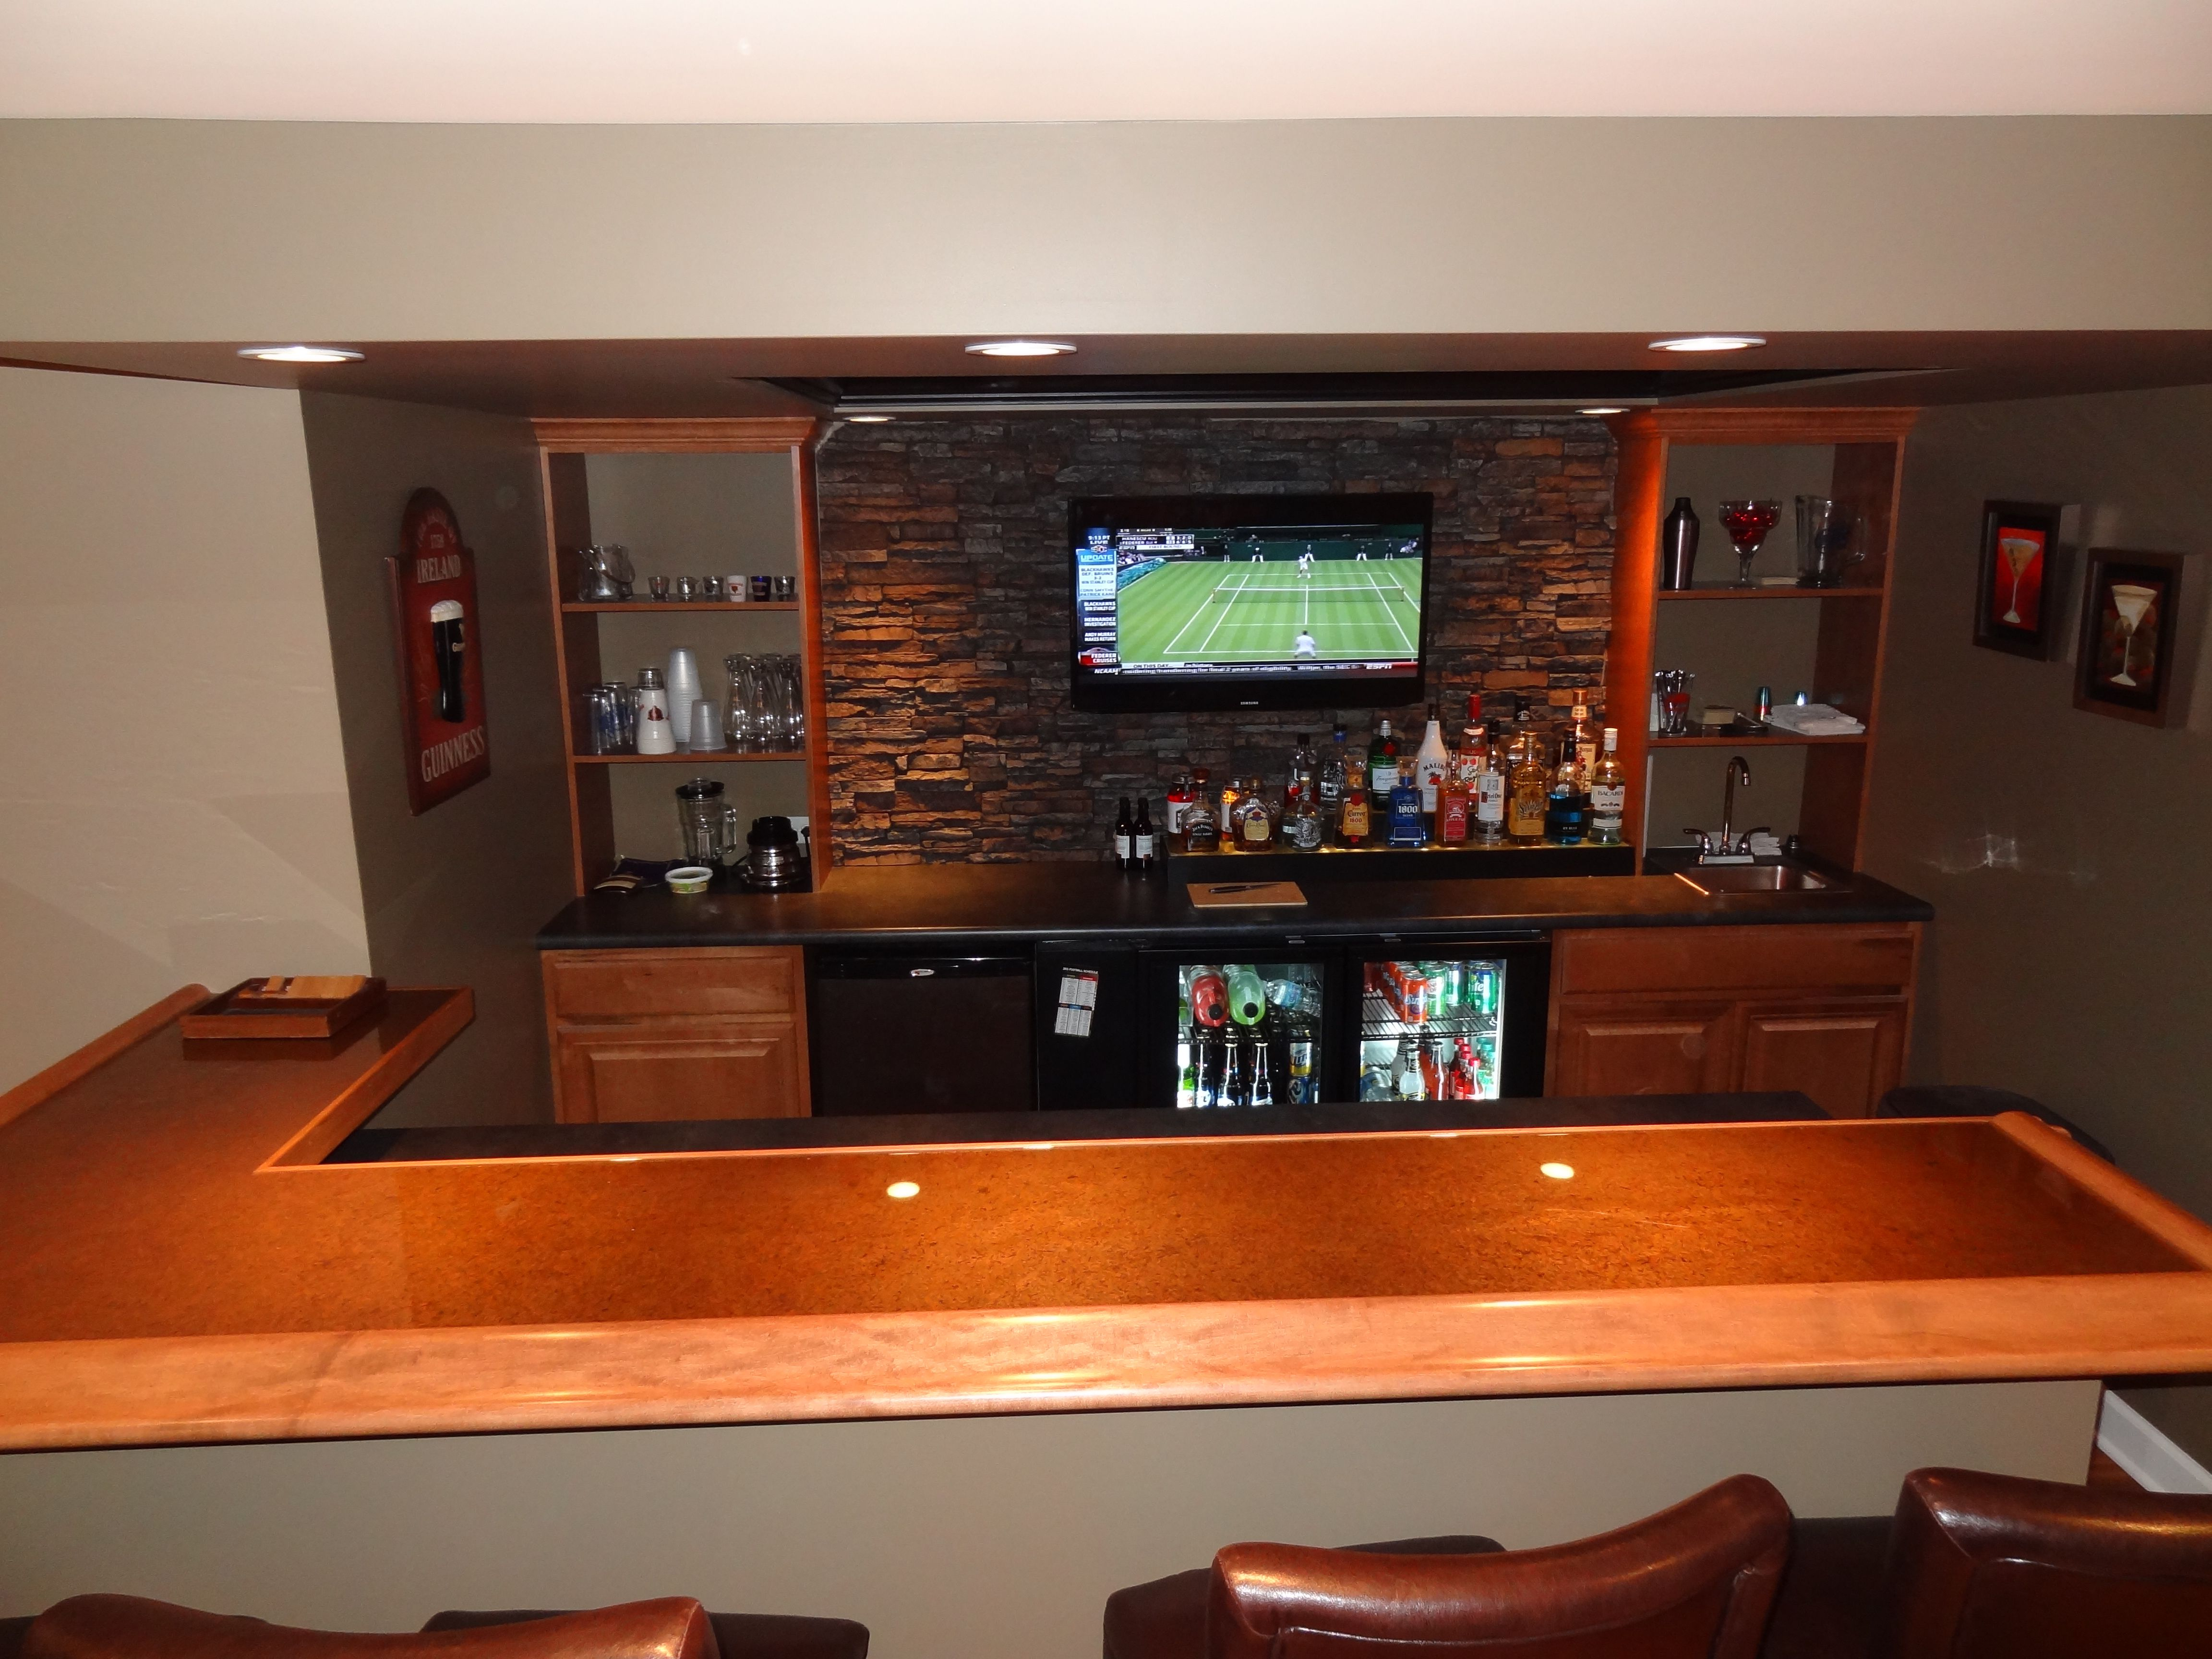 Looking for basement bar photos - Page 5 - AVS Forum | Home Theater ...